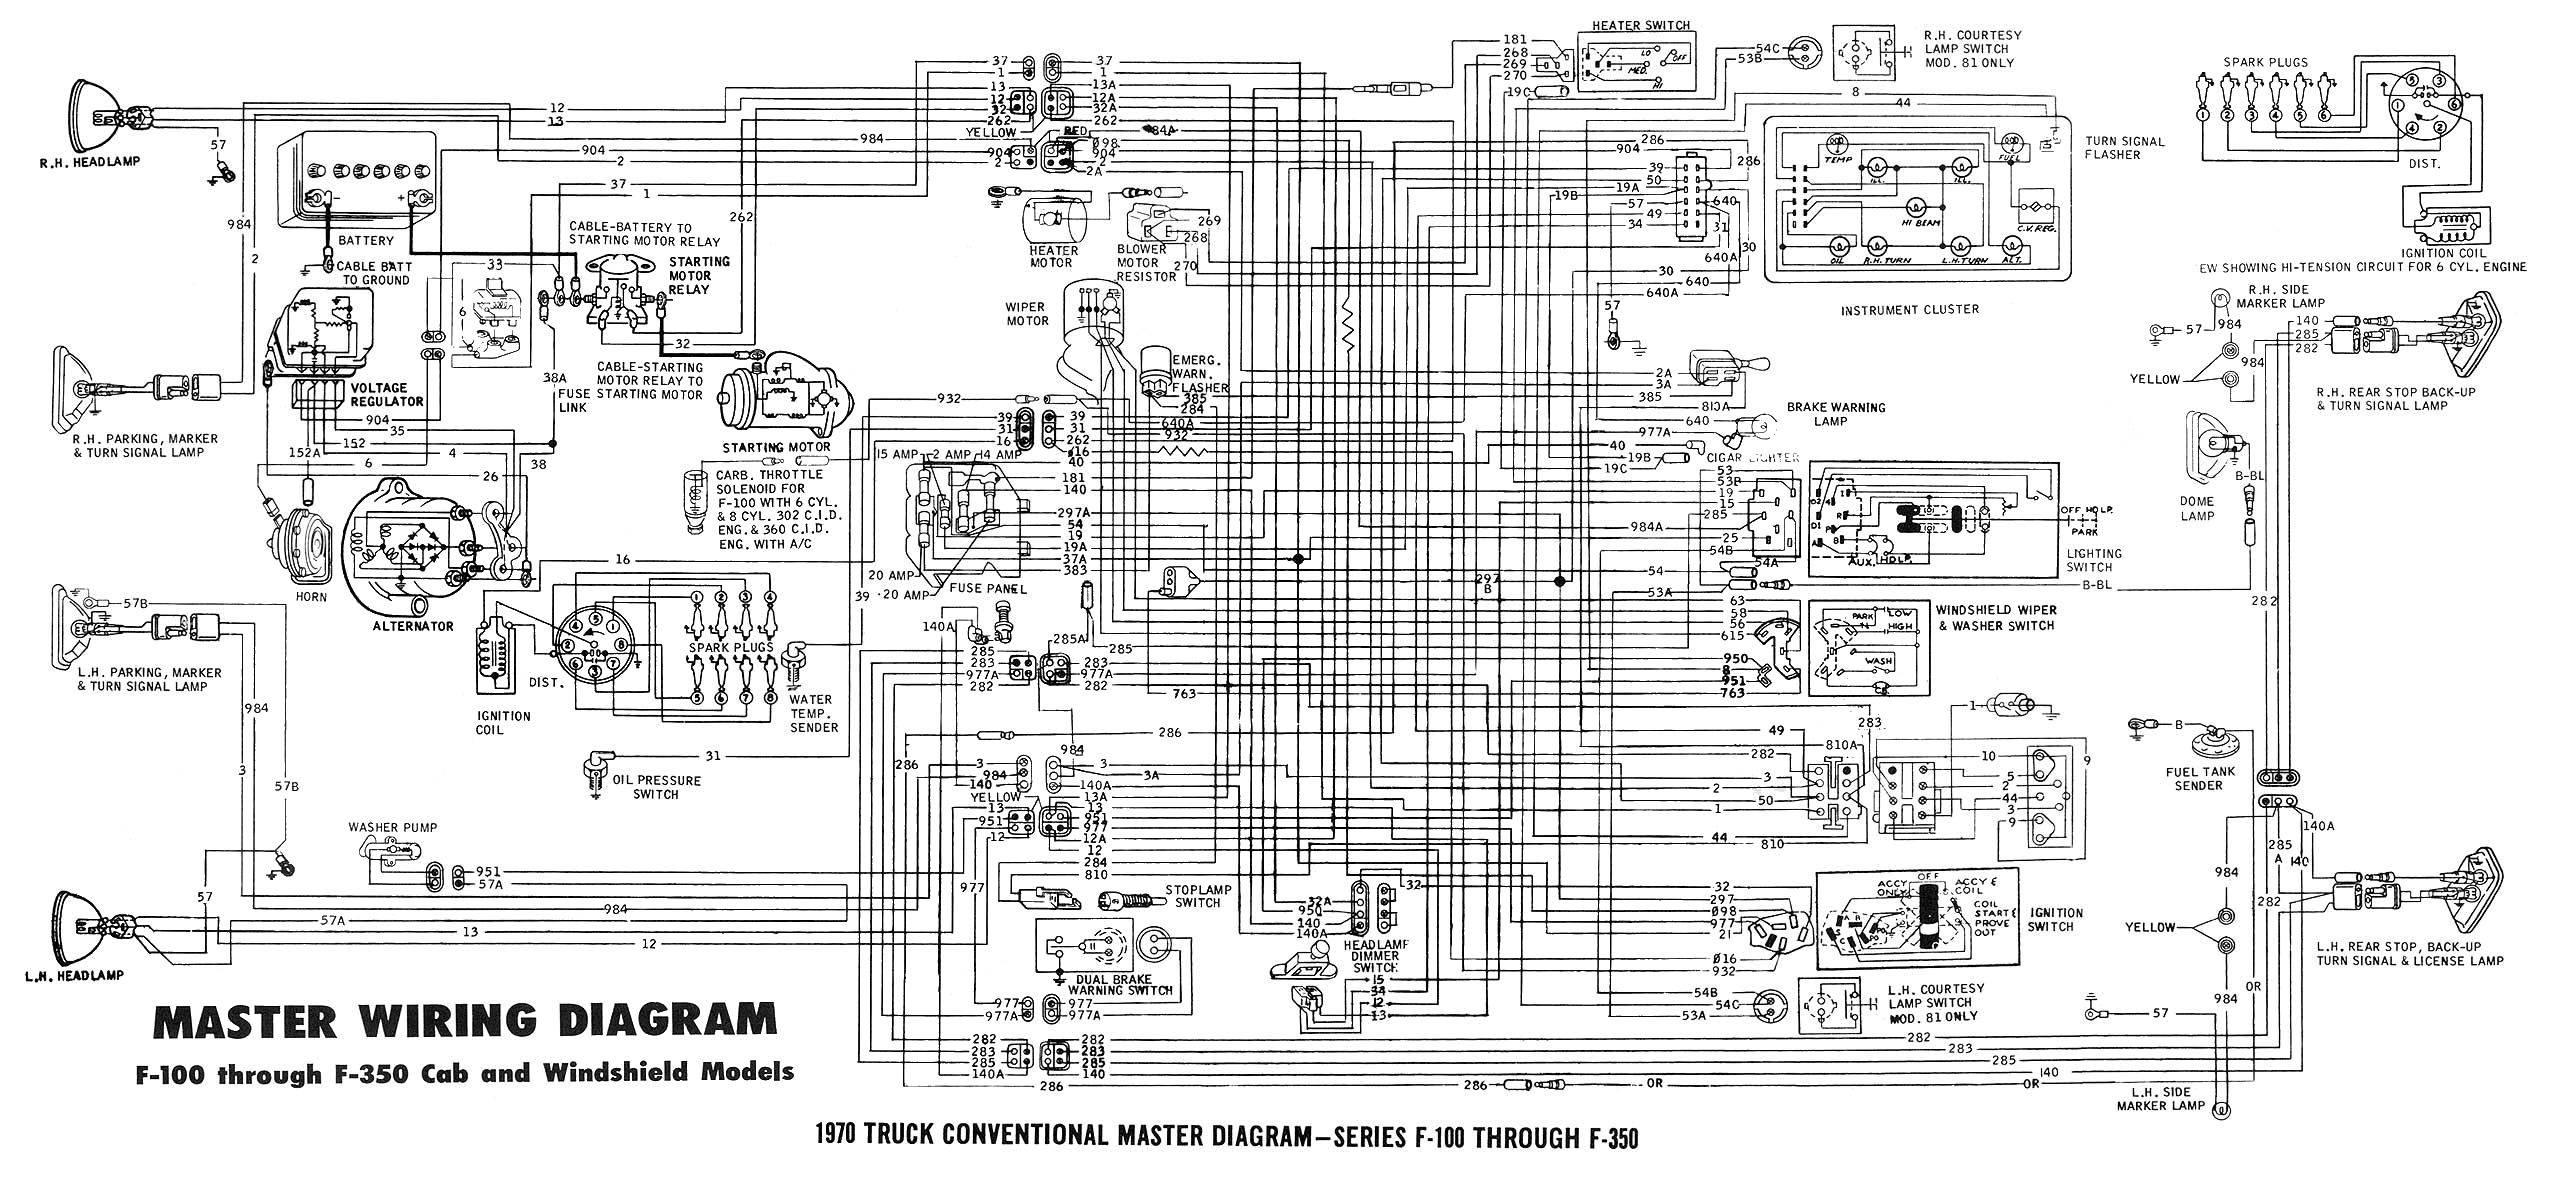 1978 Chevy Starter Wire Diagram Wiring Corvette Truck Diagramford 302 1997 Ford L8000 Diagrams